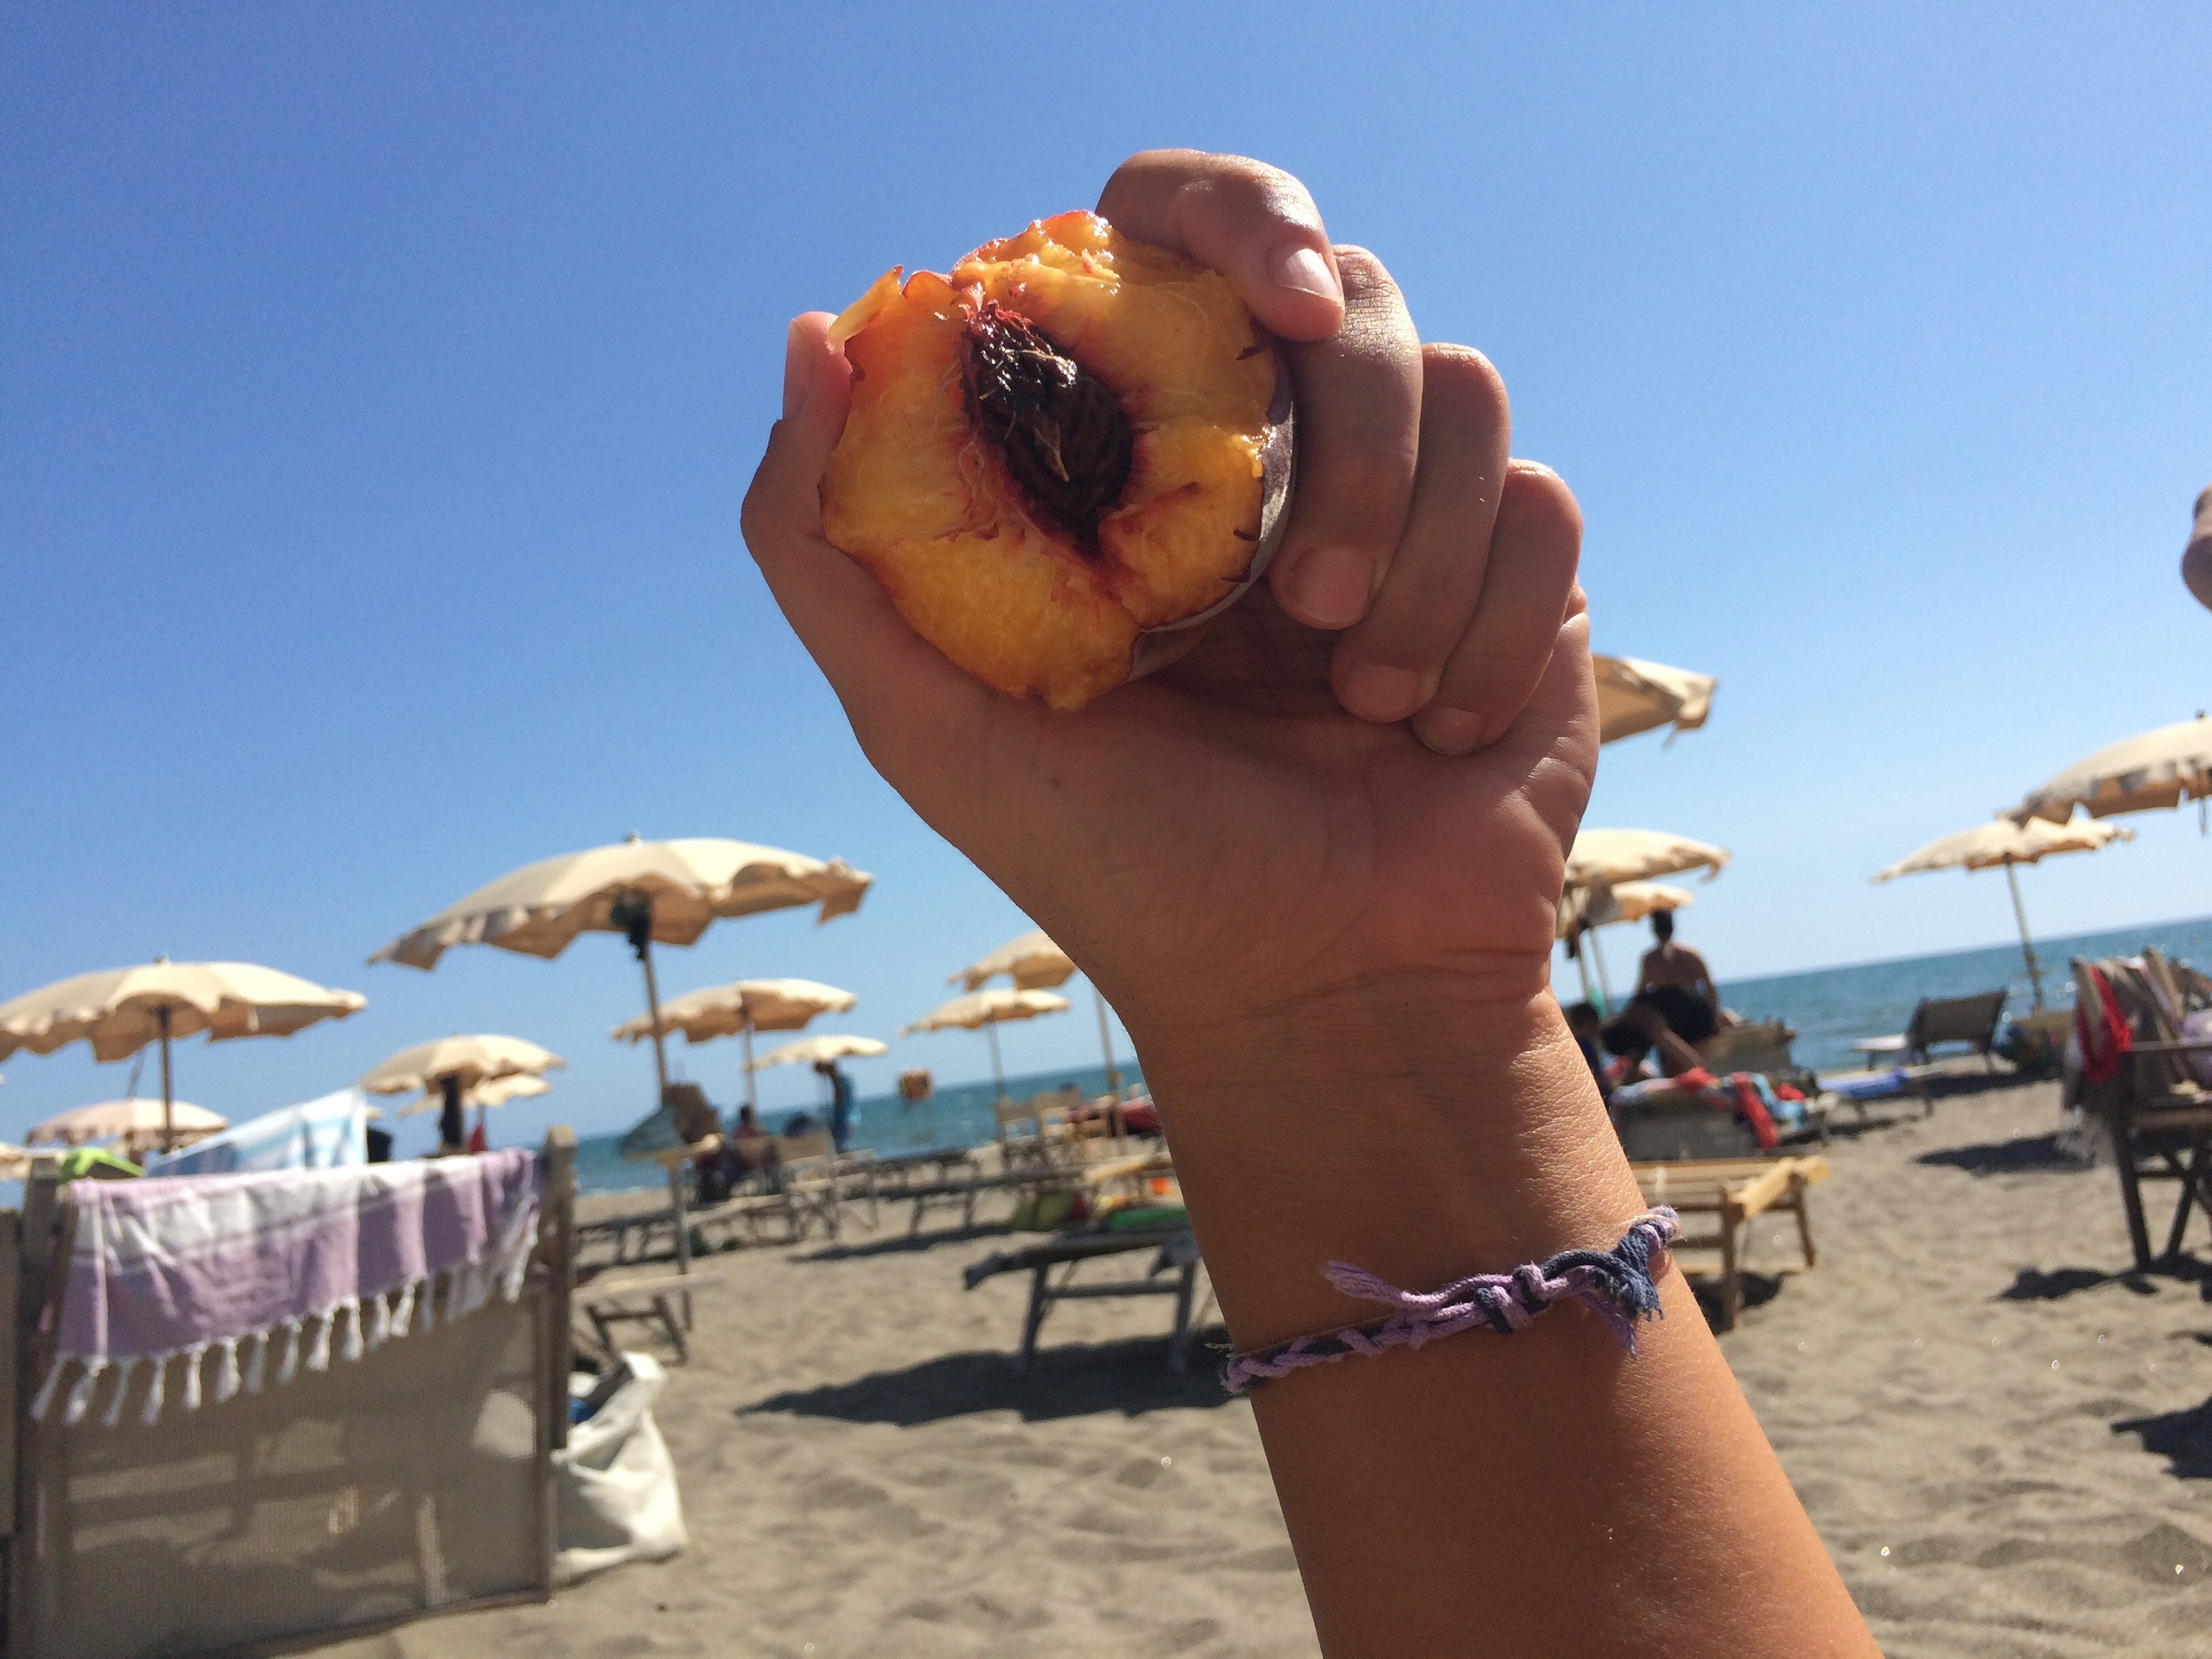 l'ultima spiaggia: the last beach when you cross from Tuscany to Lazio in italy